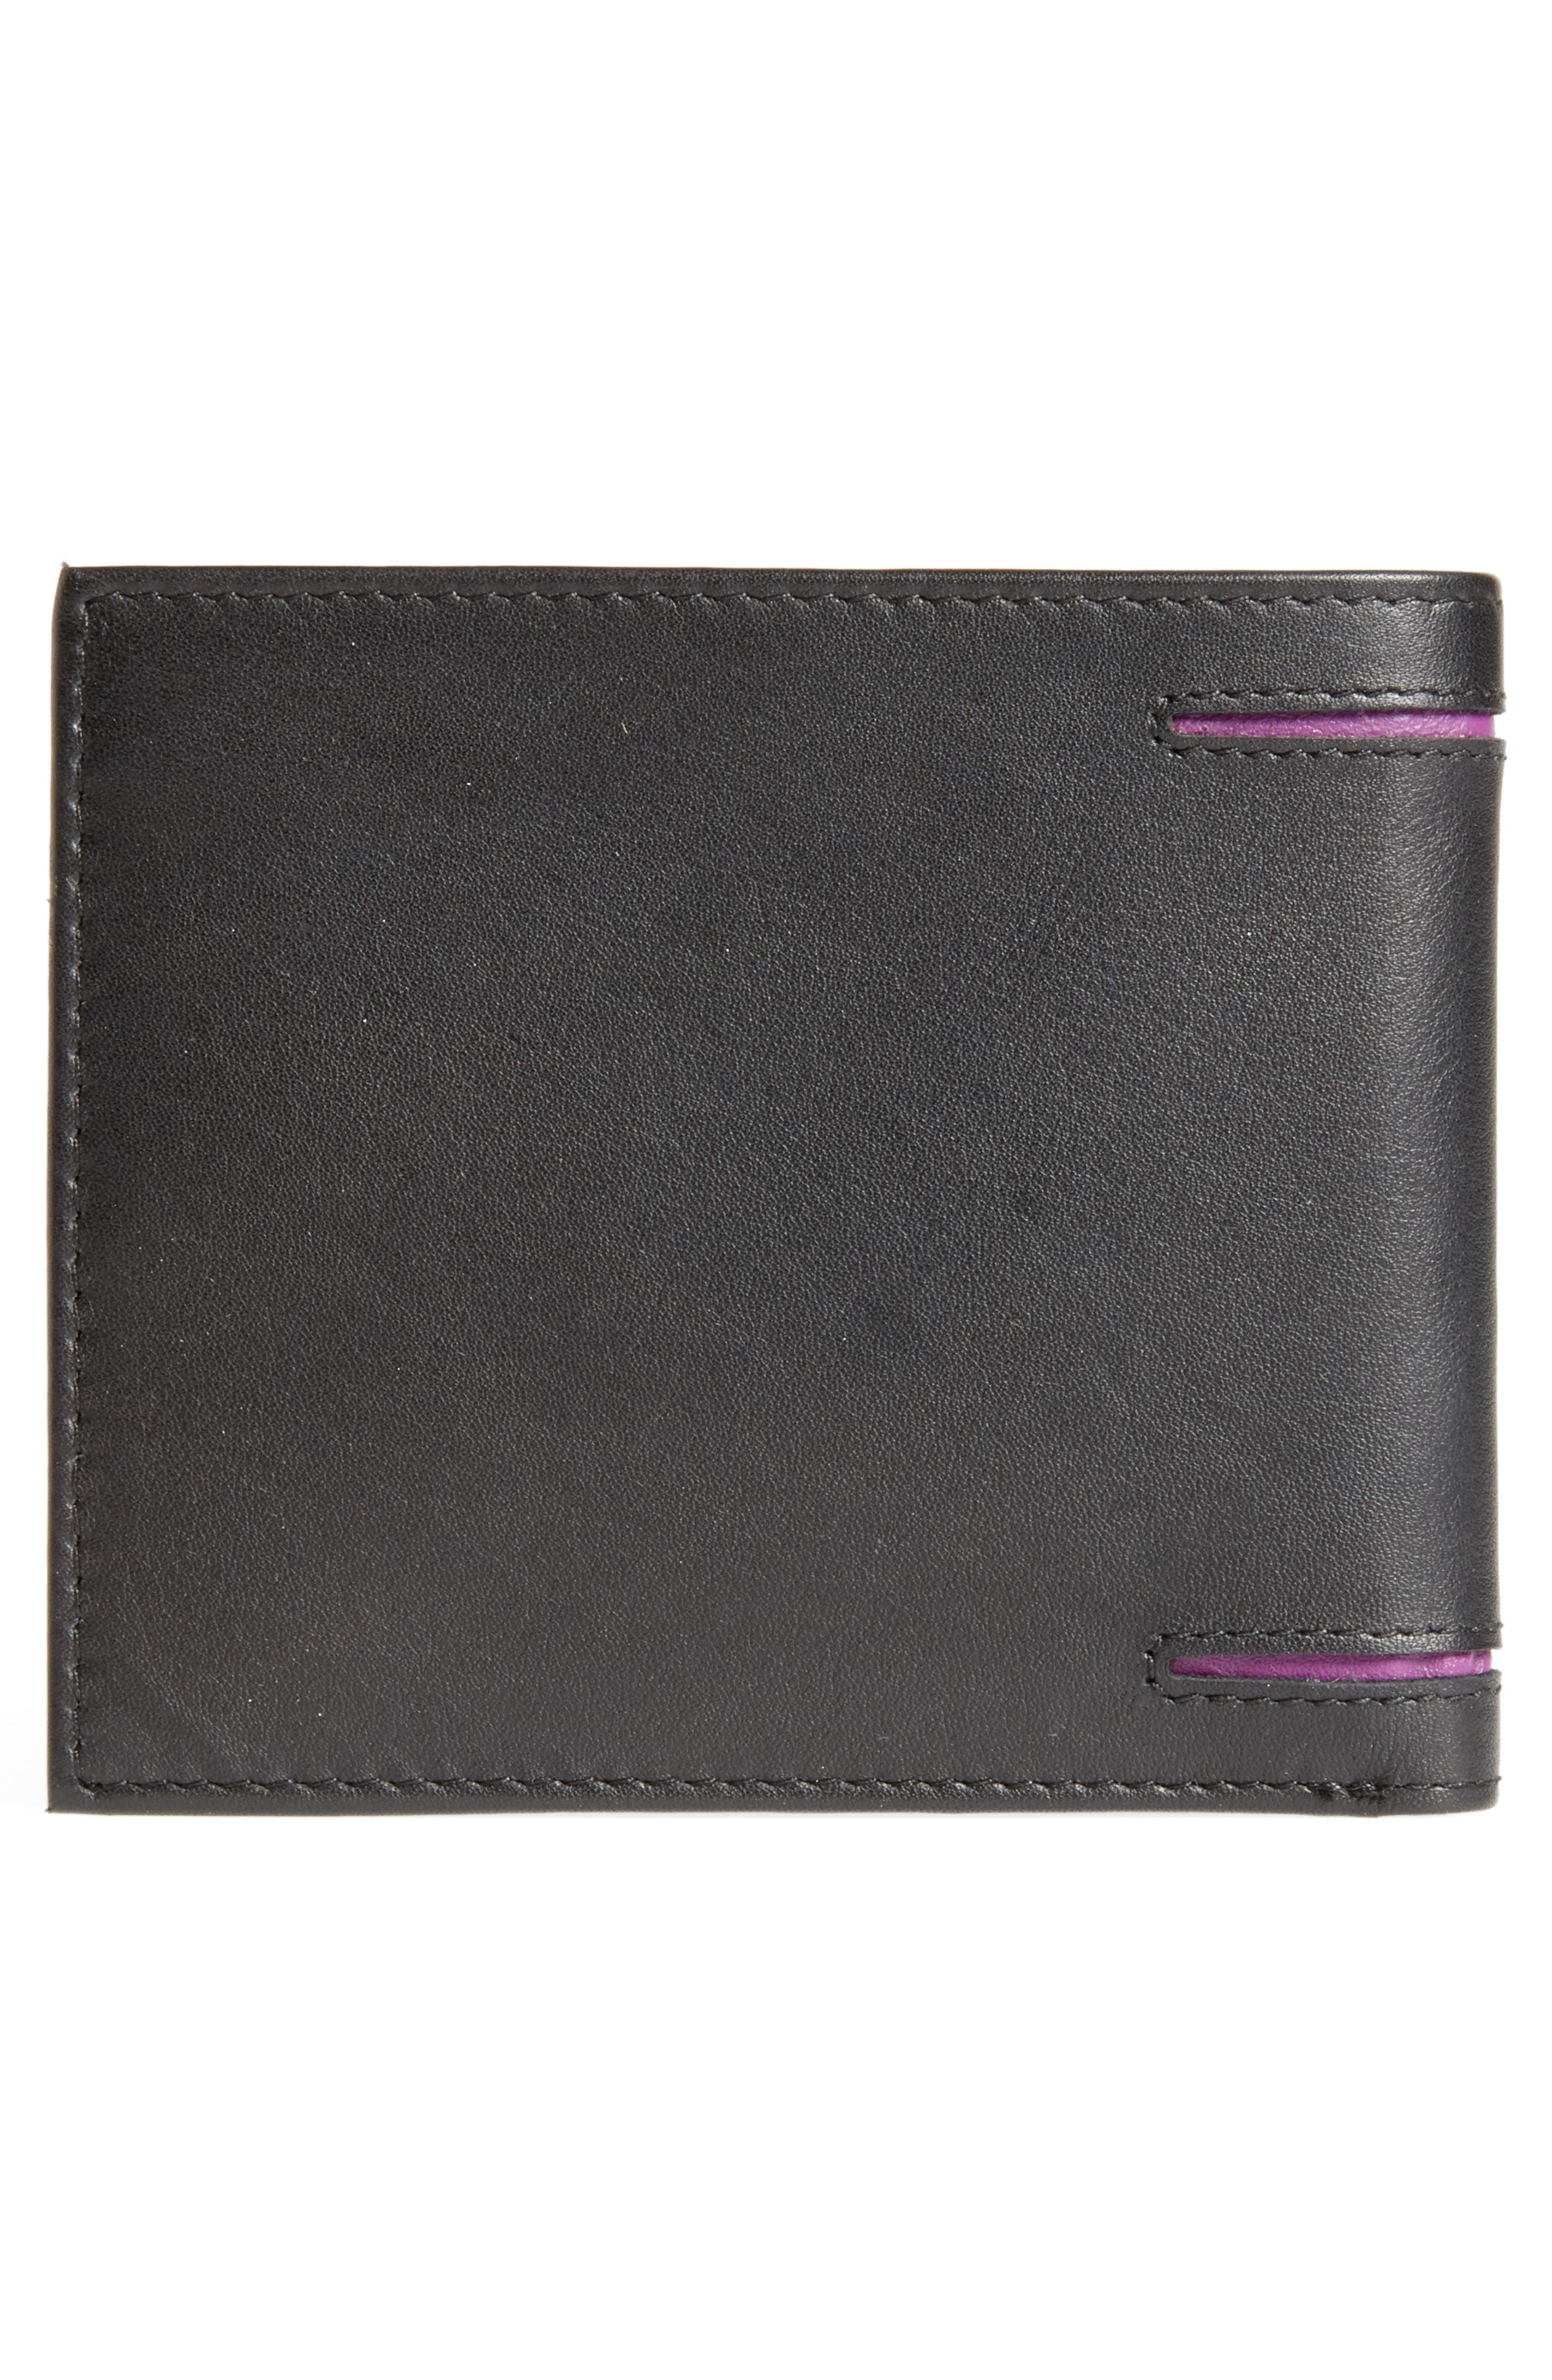 Figgy Inset Spine Leather Wallet,                             Alternate thumbnail 3, color,                             Black